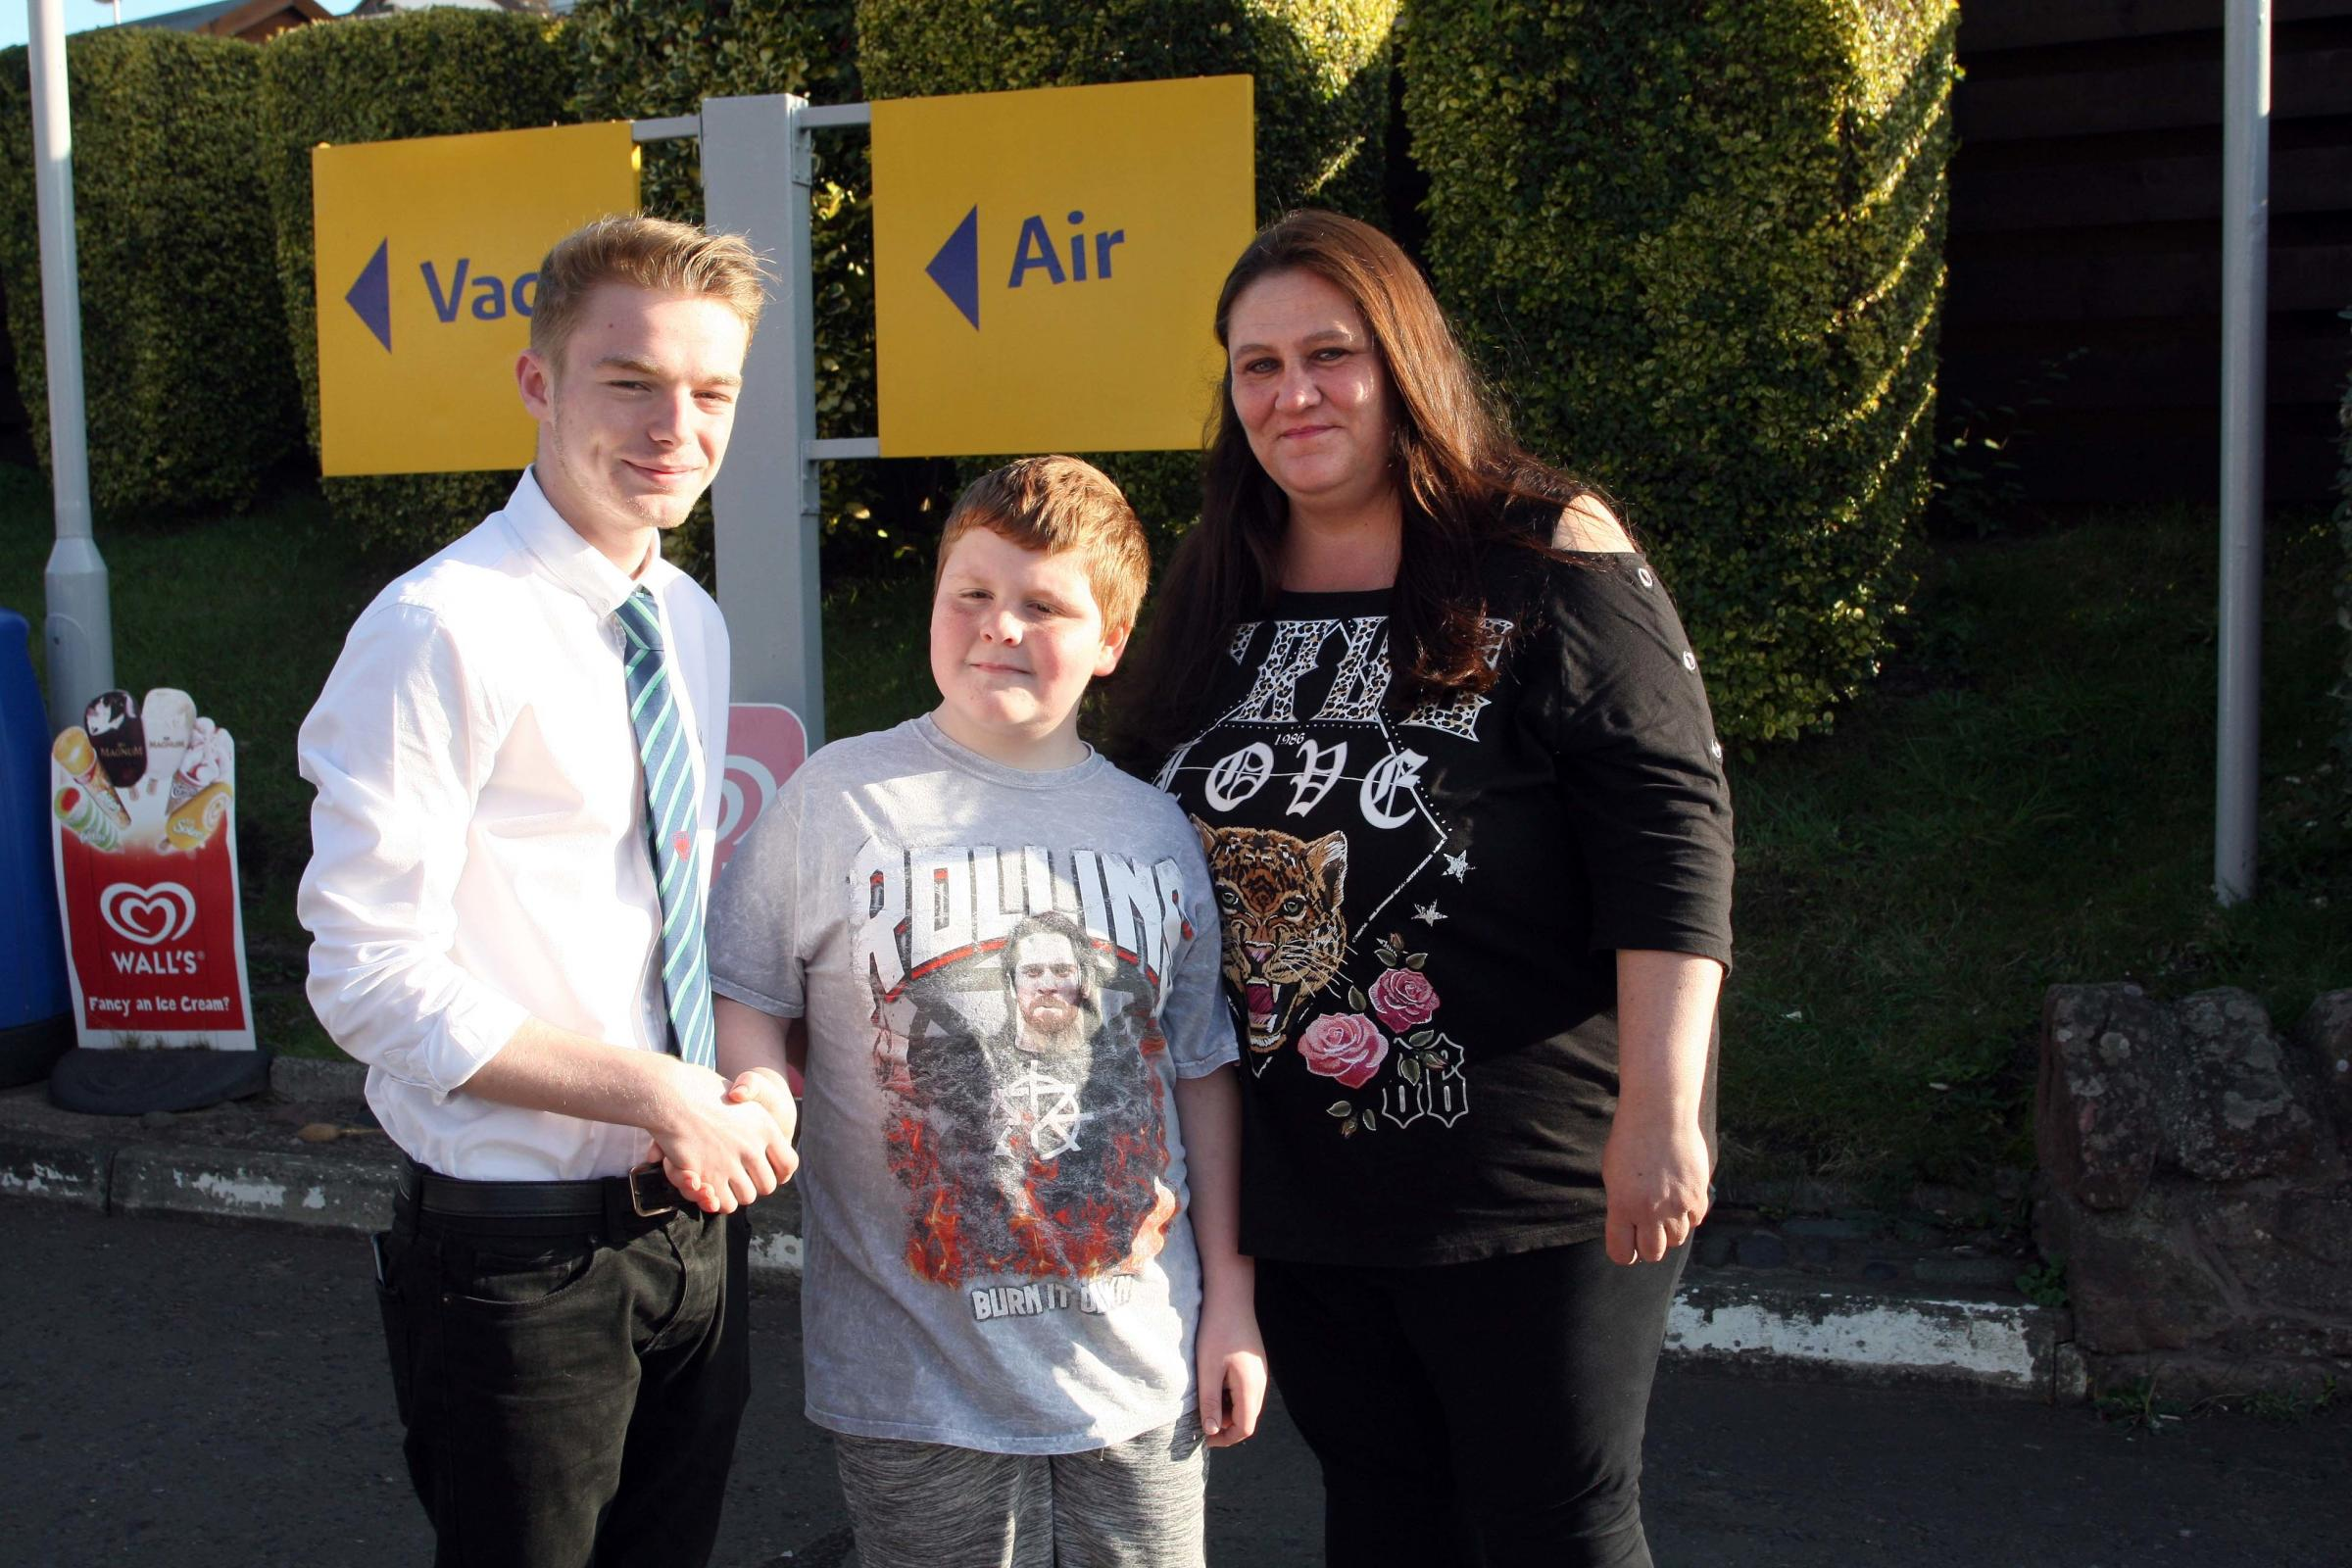 Mum praises teenager who came to her autistic son's aid